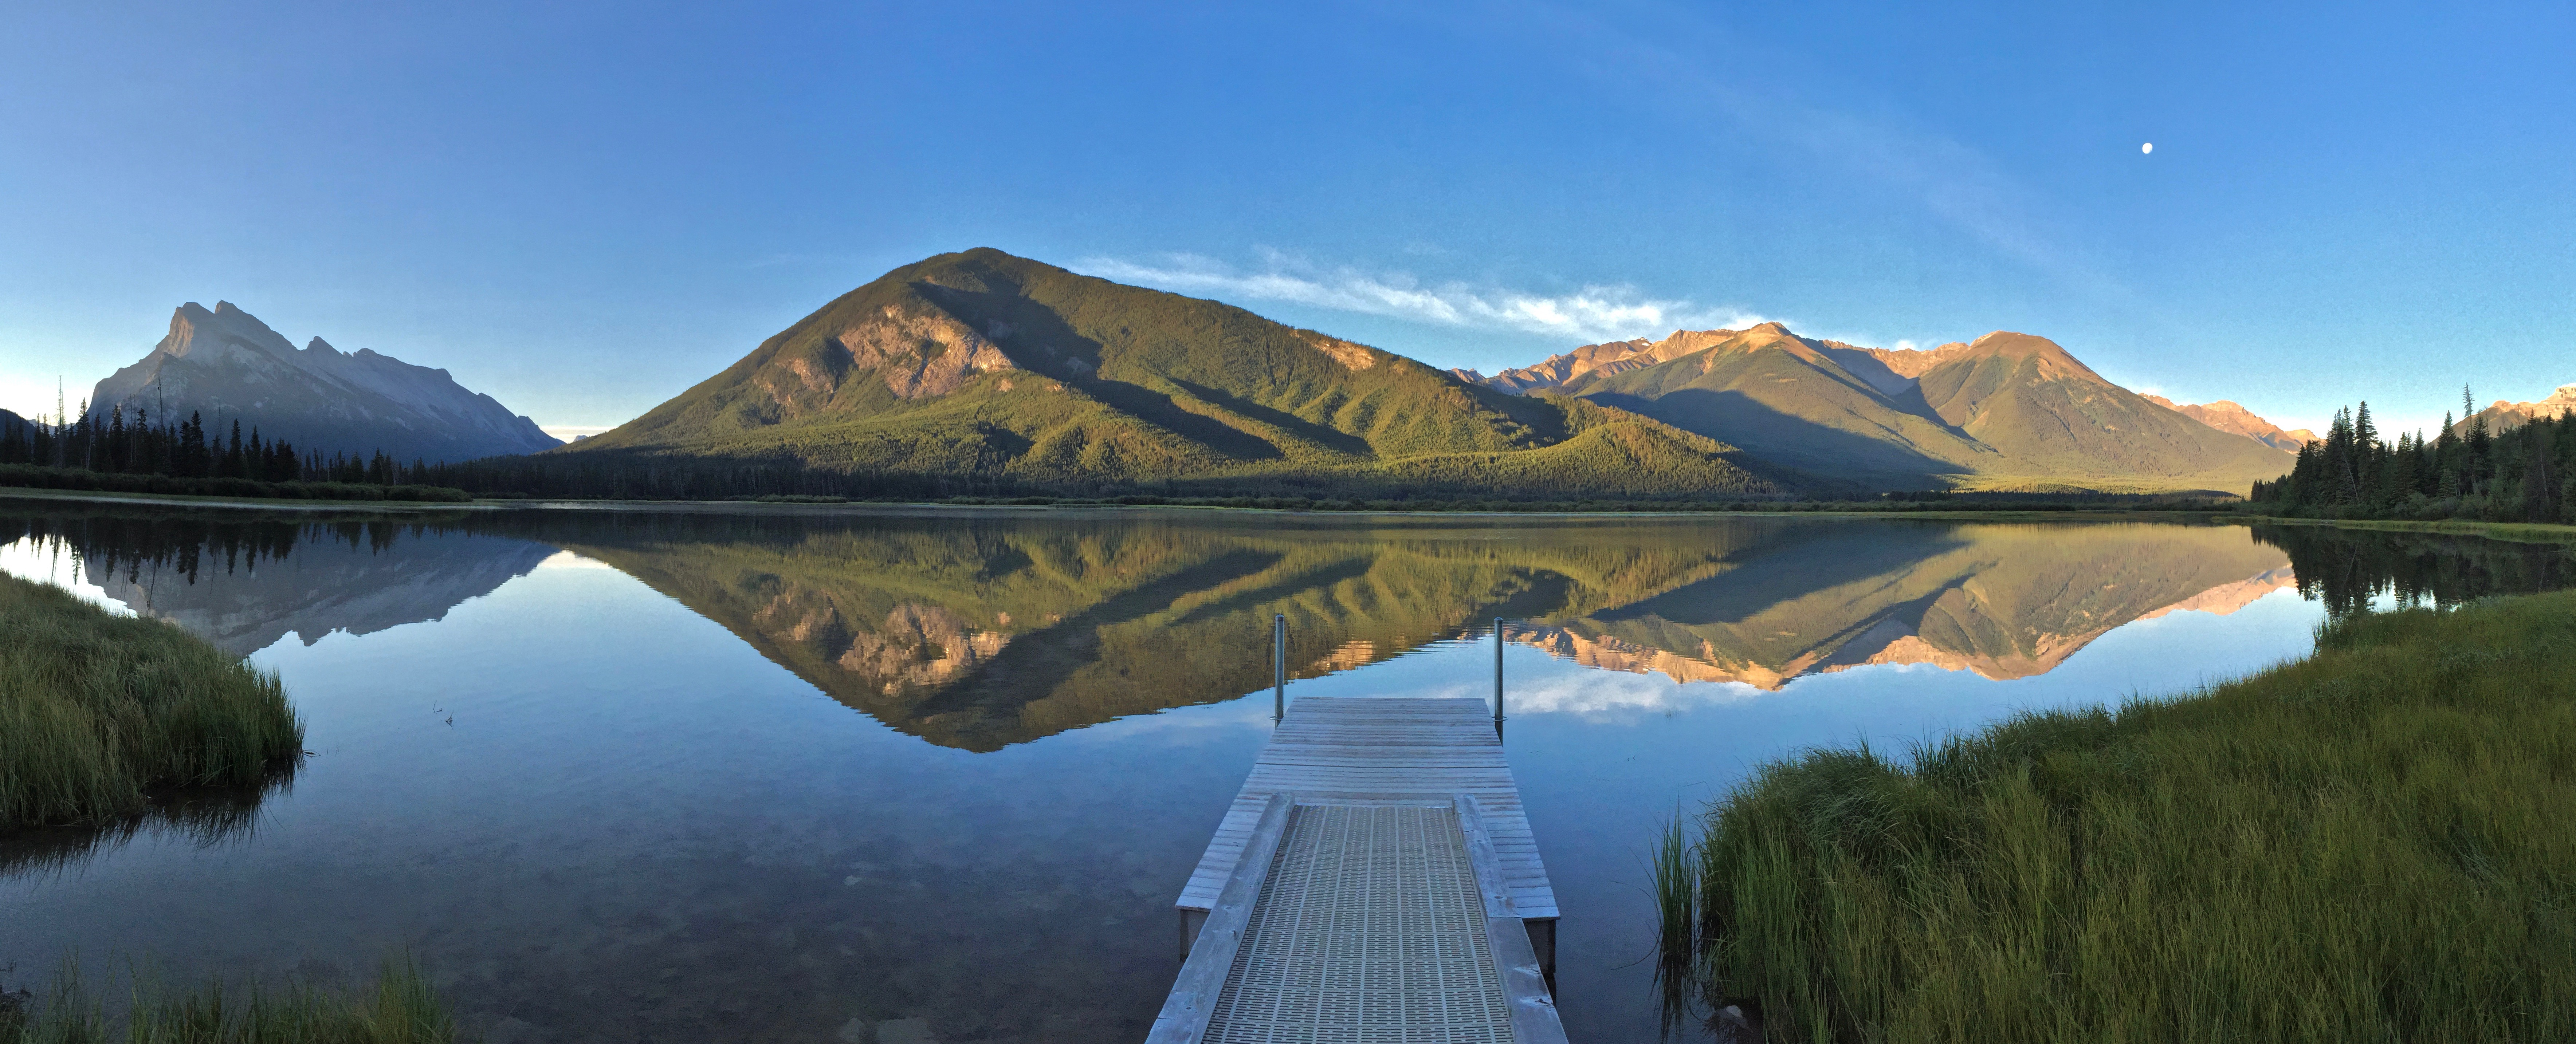 A green mountain reflected on a smooth lake surface; dock in foreground.